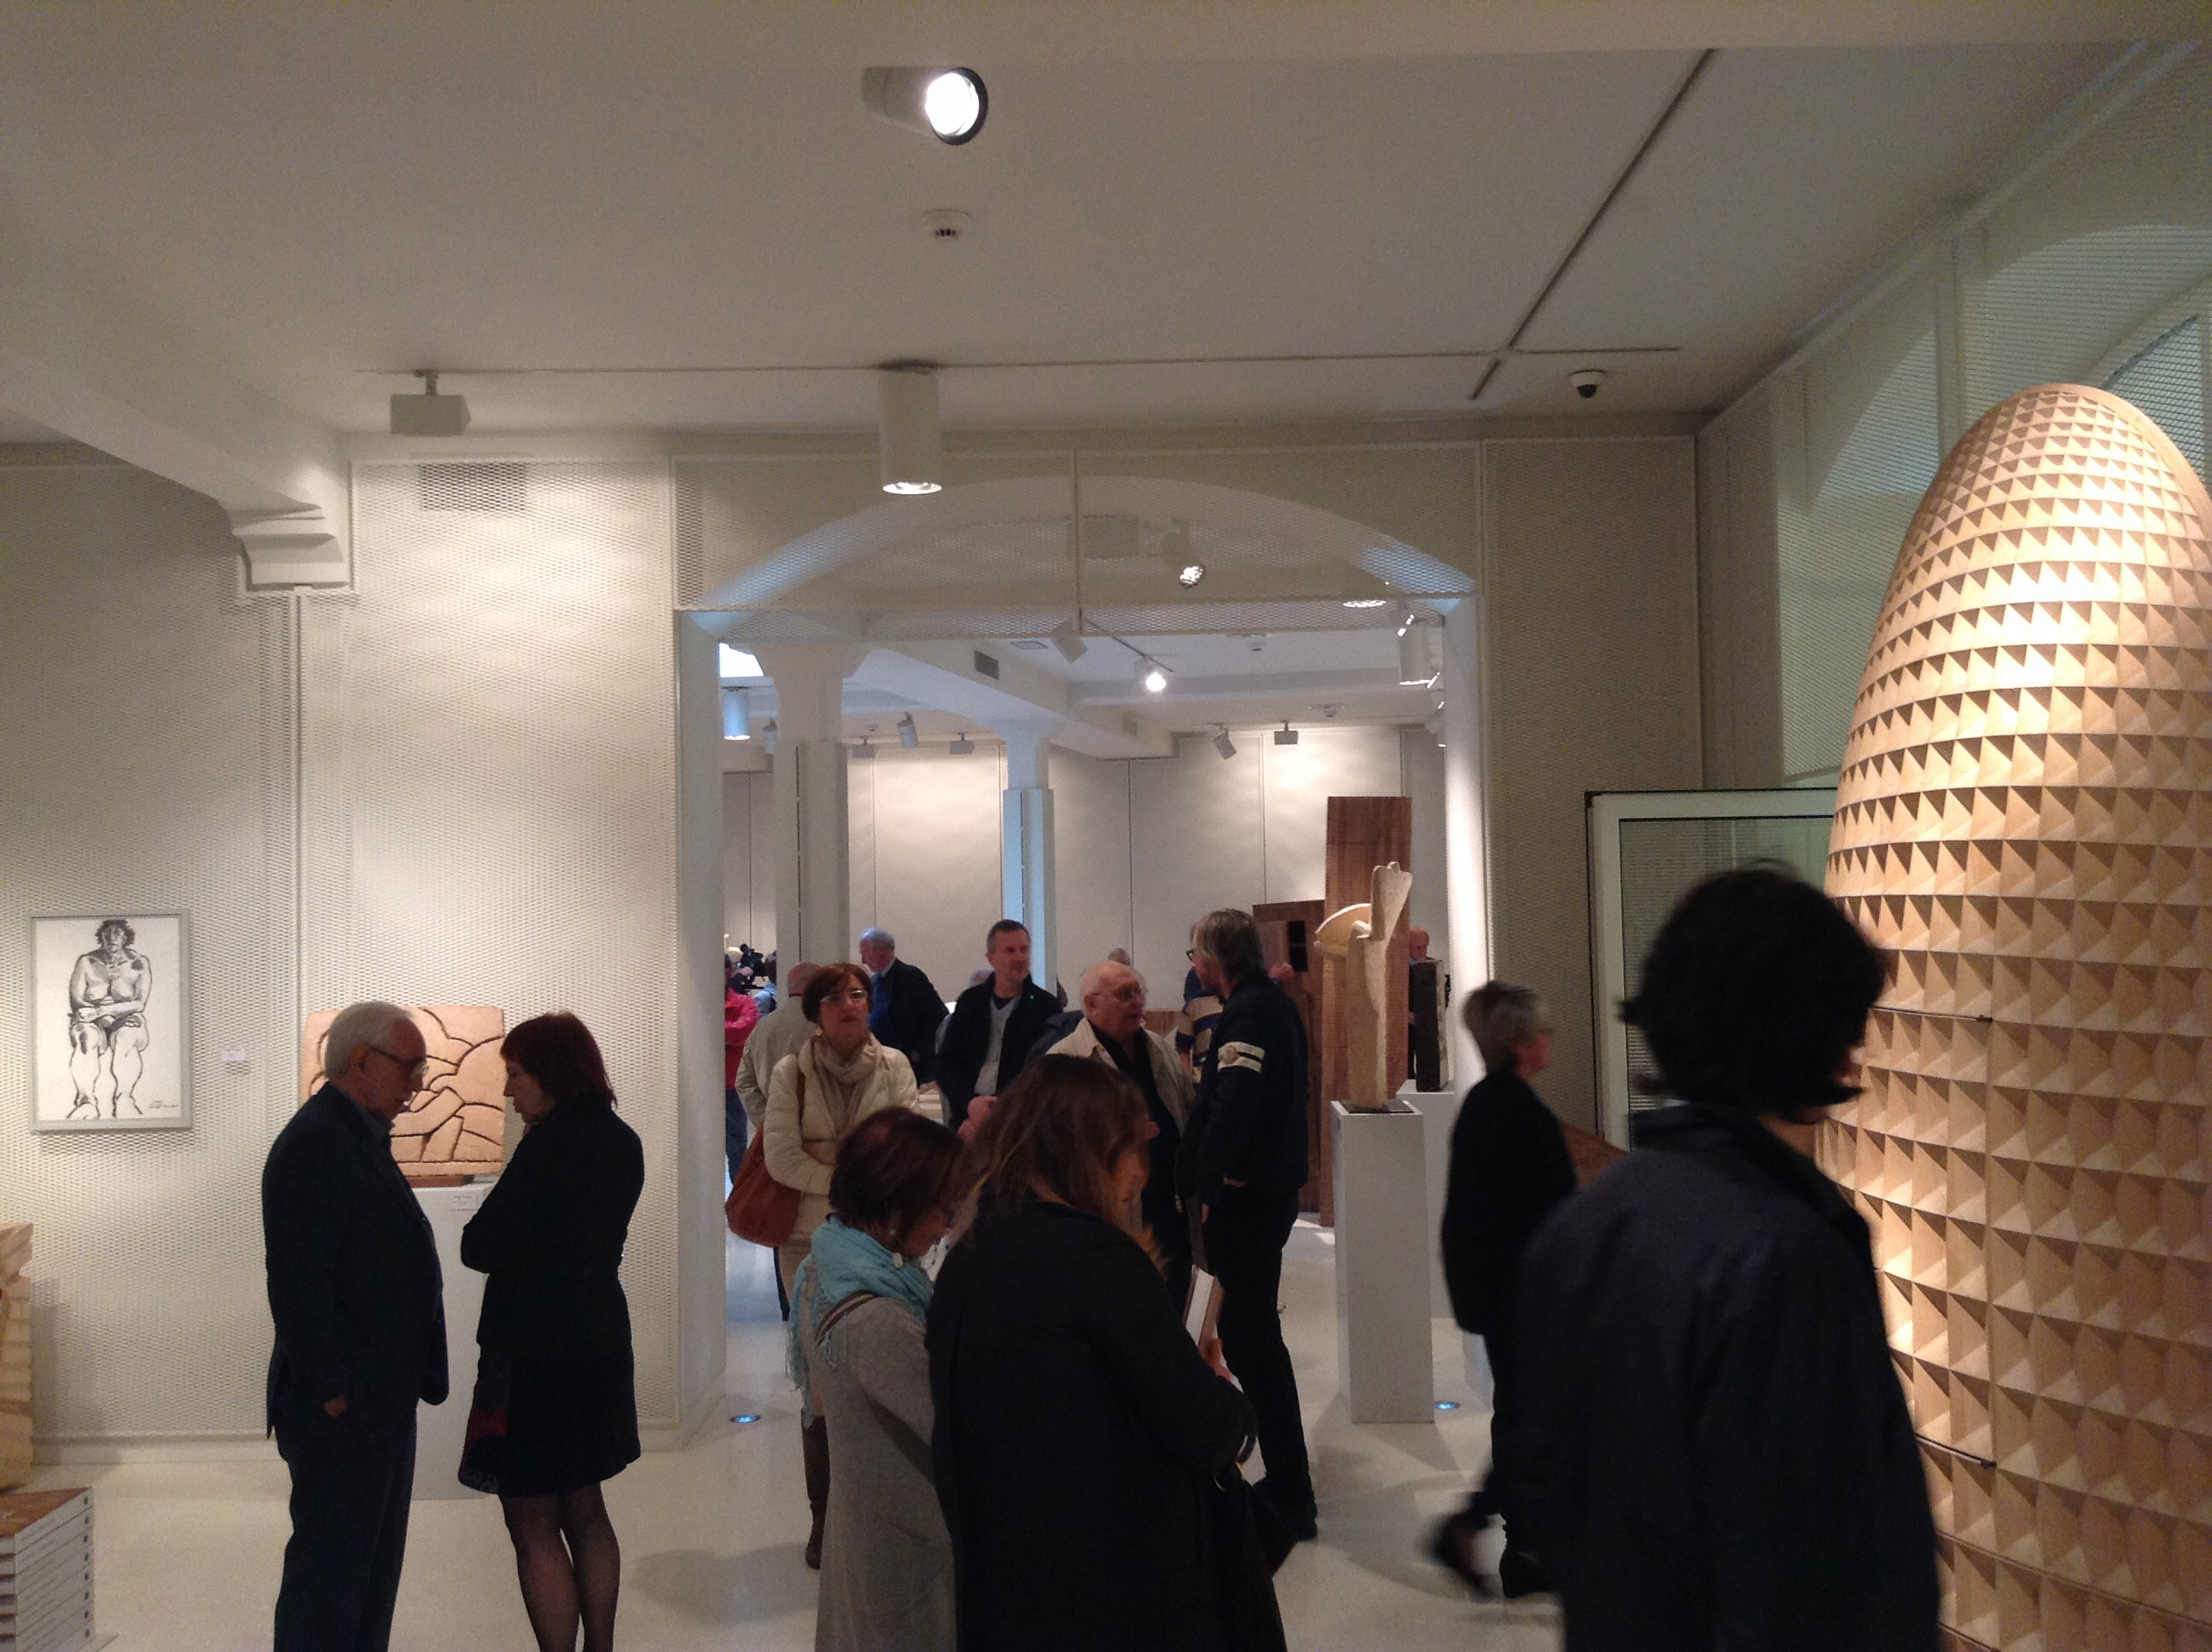 Great turnout at Agnellini Arte Moderna for the exhibition